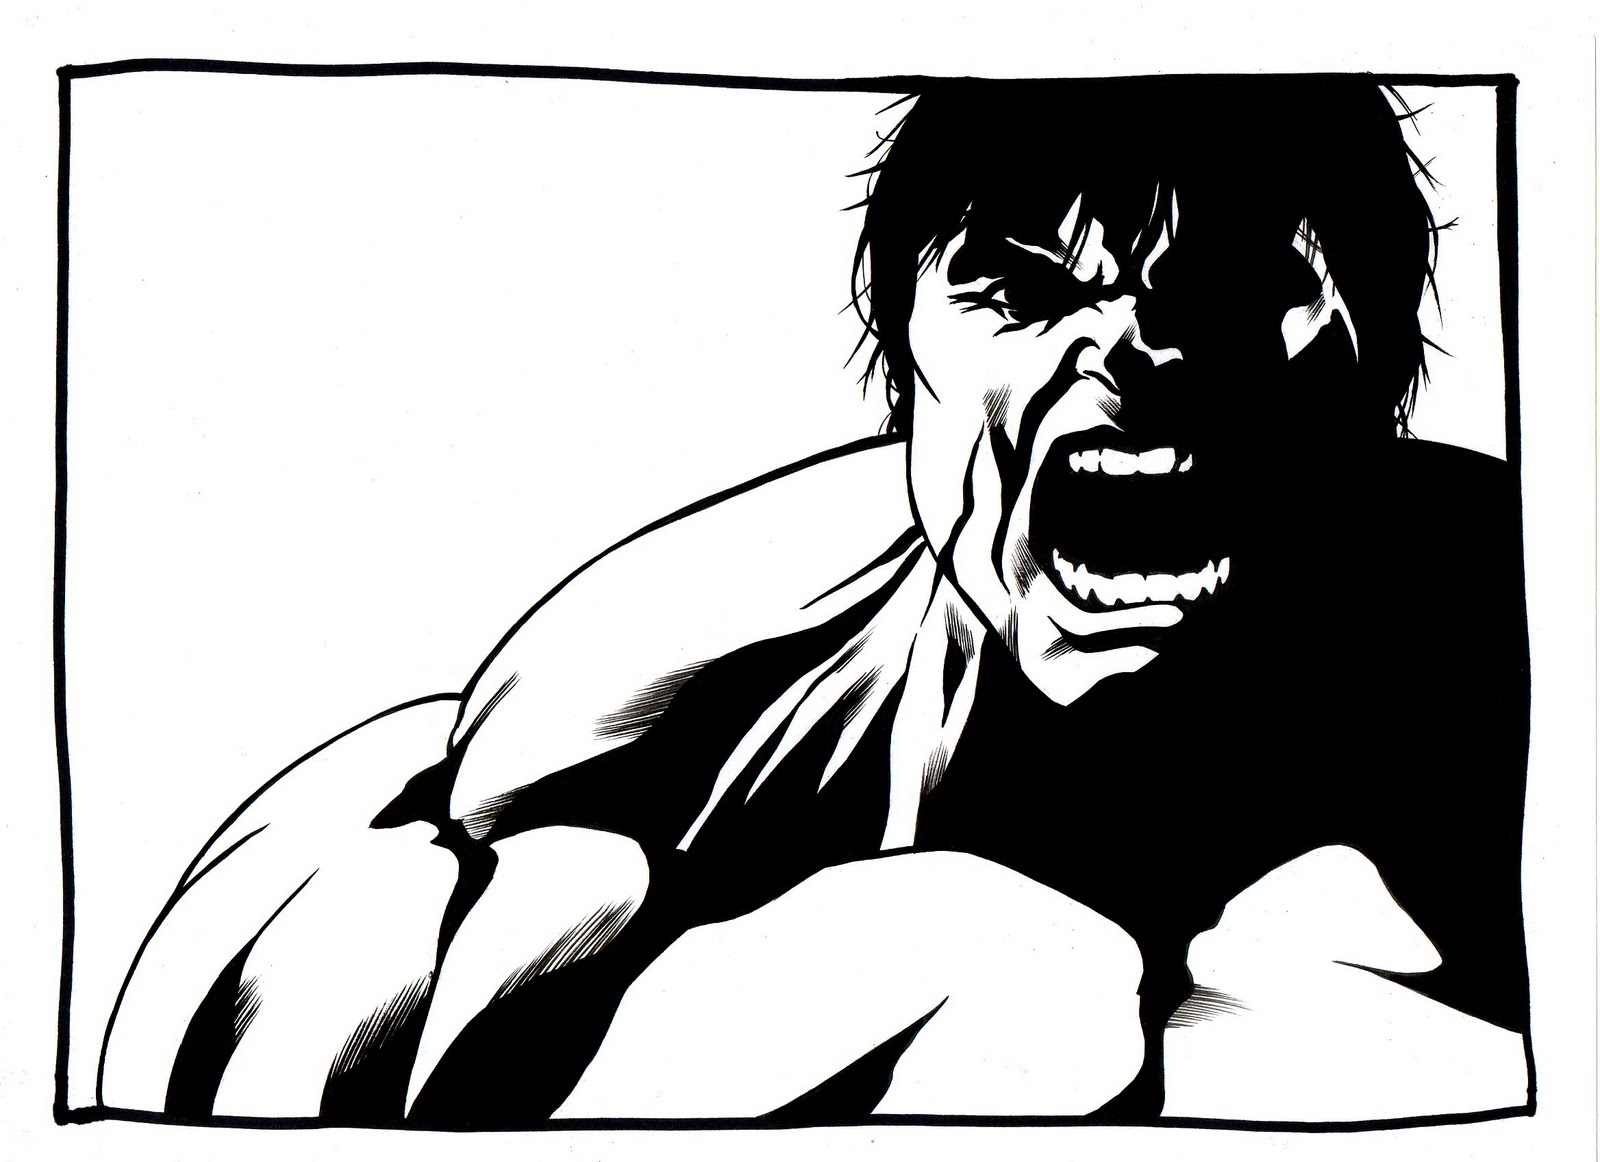 The Incredible Hulk Coloring Pages #5